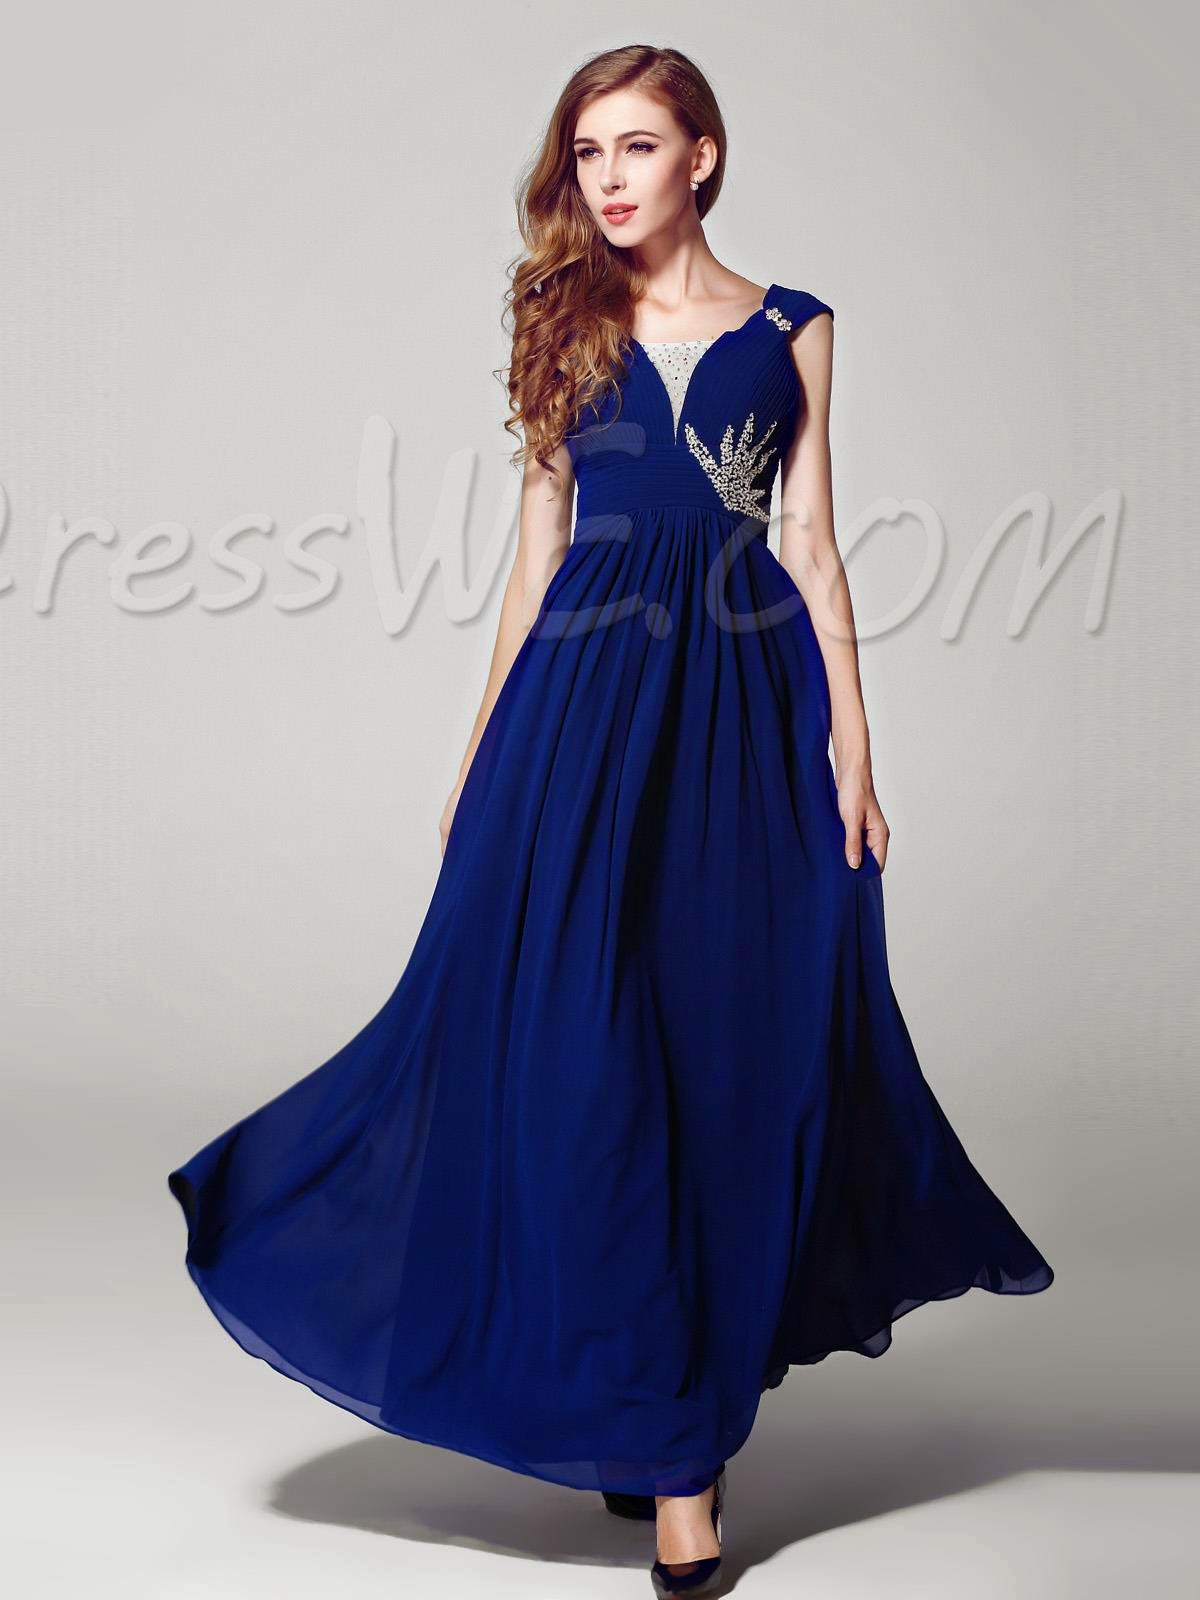 Homecoming Dresses Shops Near Me - Boutique Prom Dresses